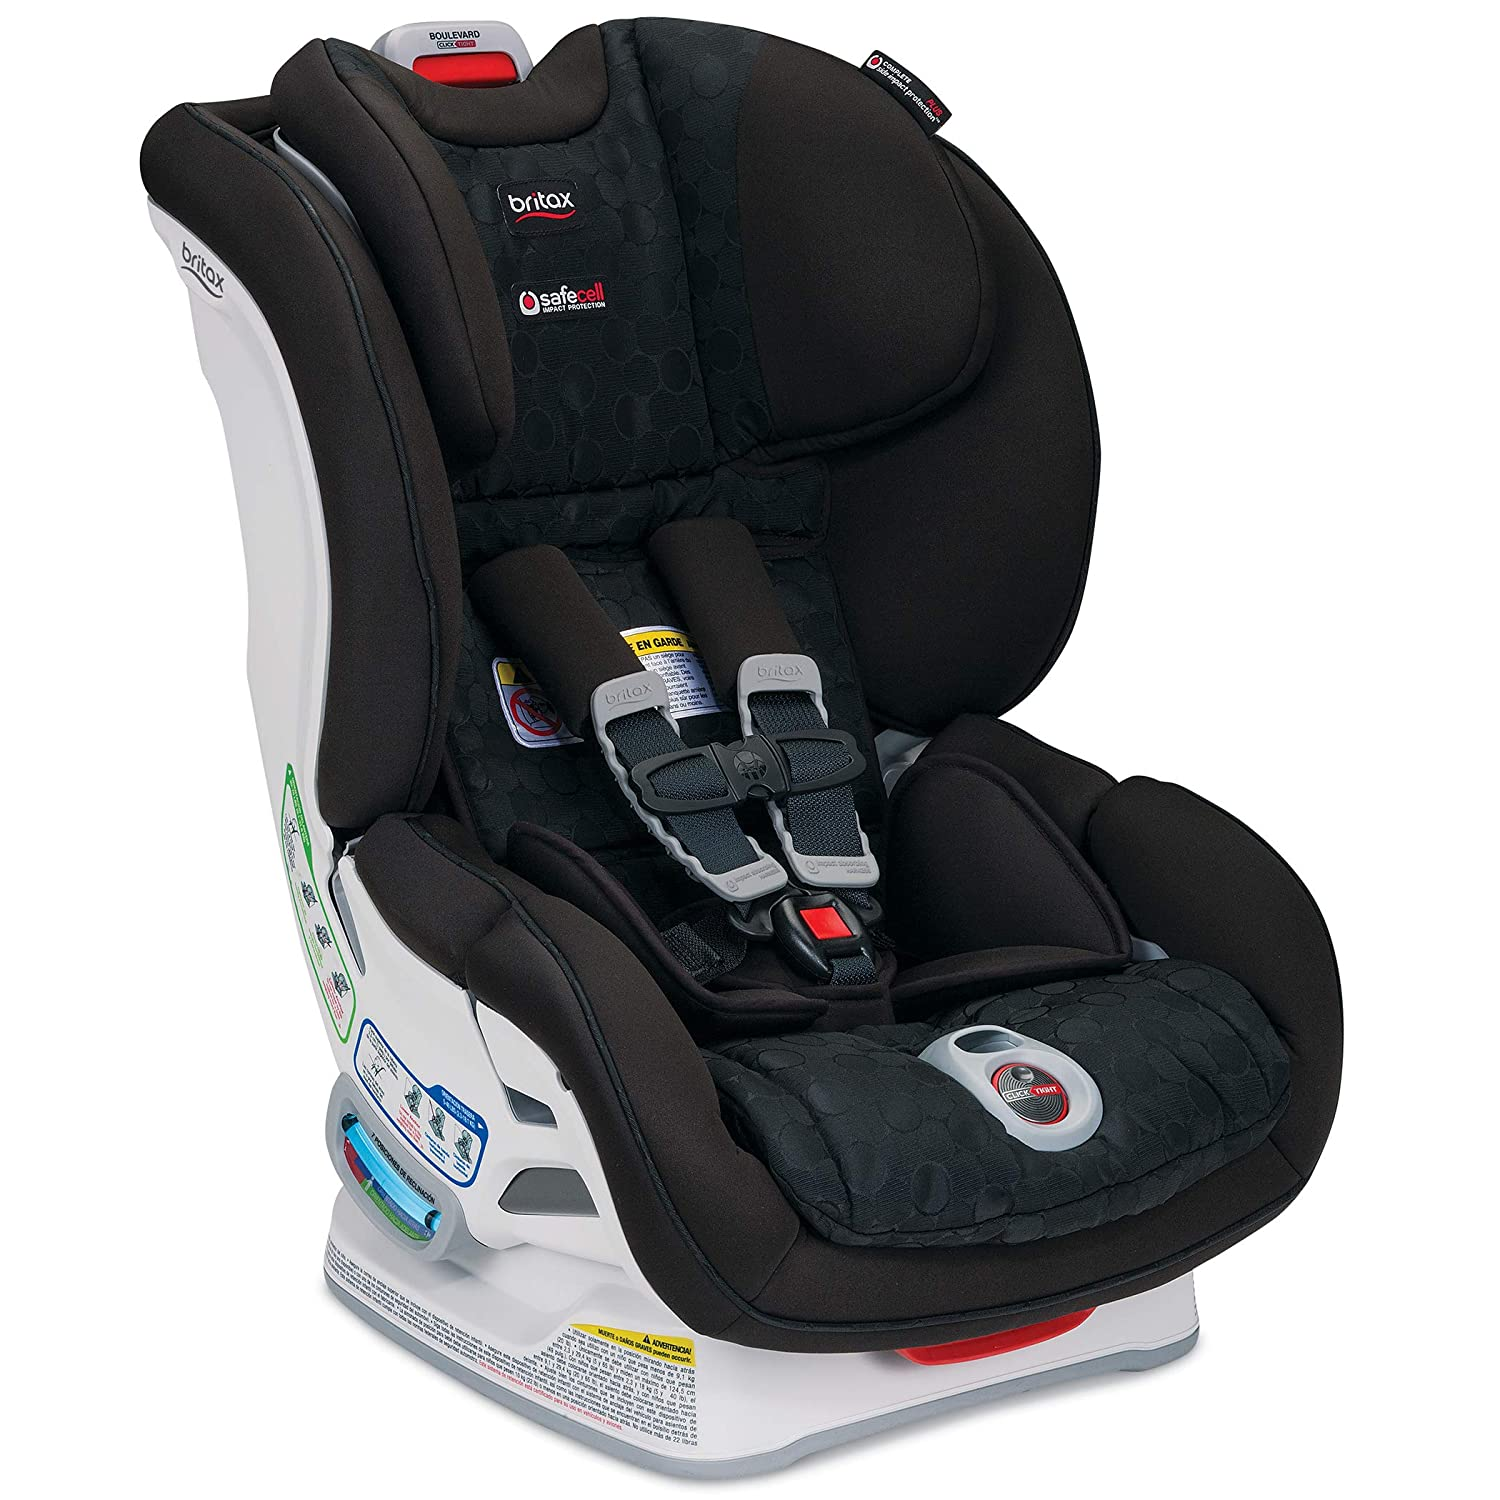 Top 4 Best Convertible Car Seat for Newborns Reviews in 2019 3